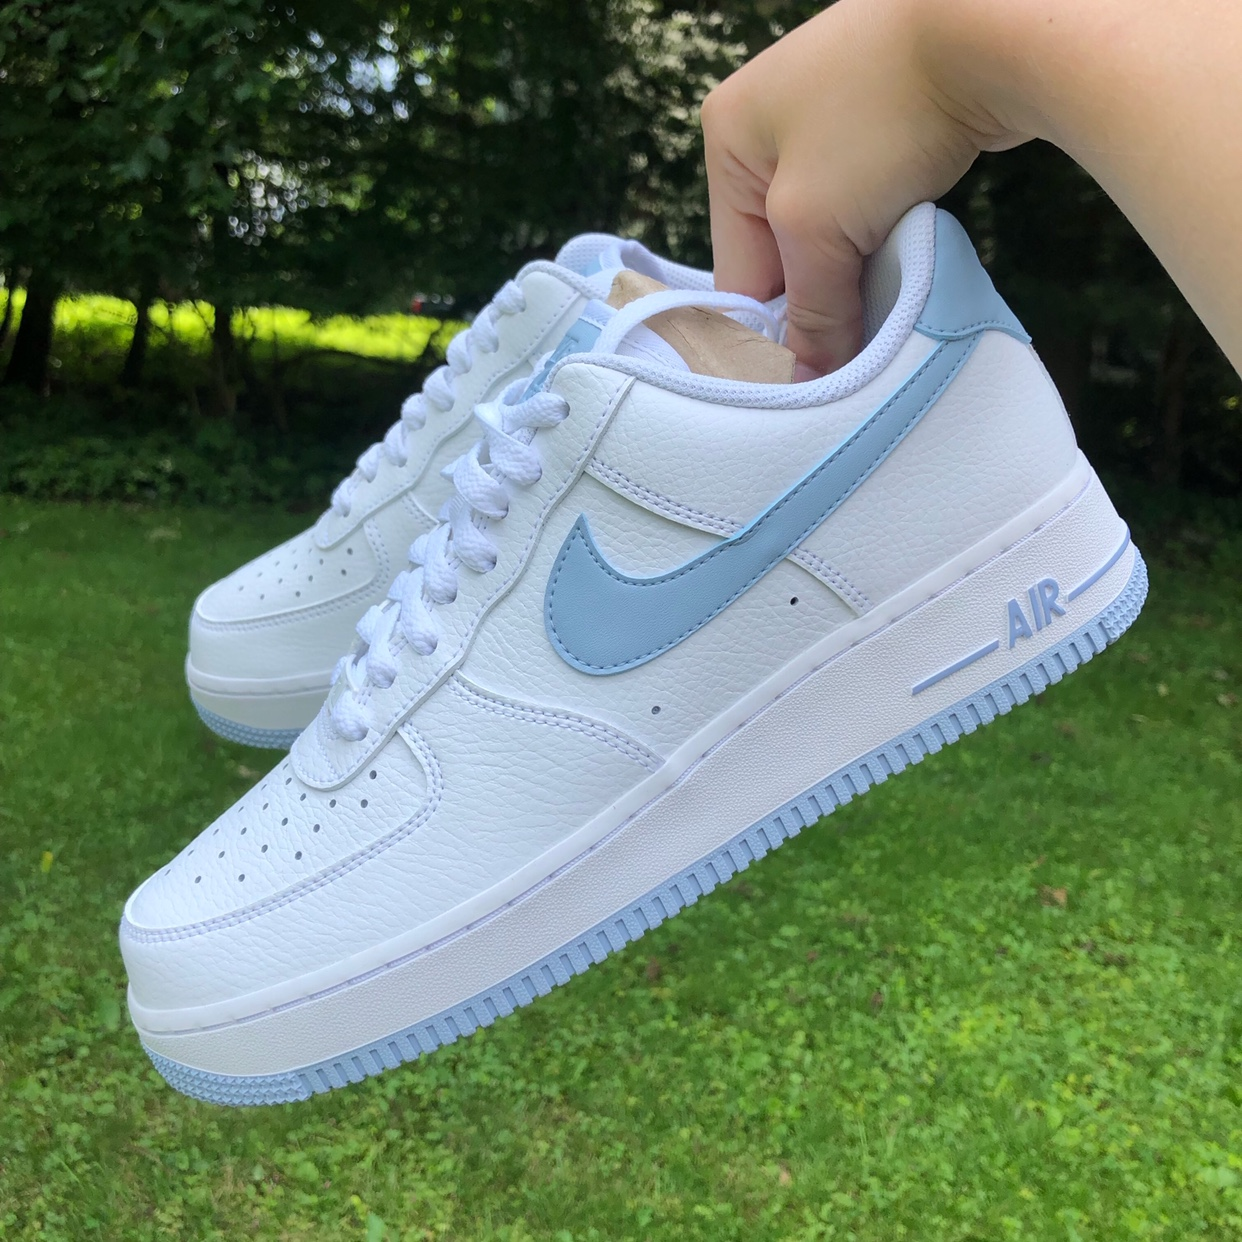 Women's Air Force 1 Low White/Light